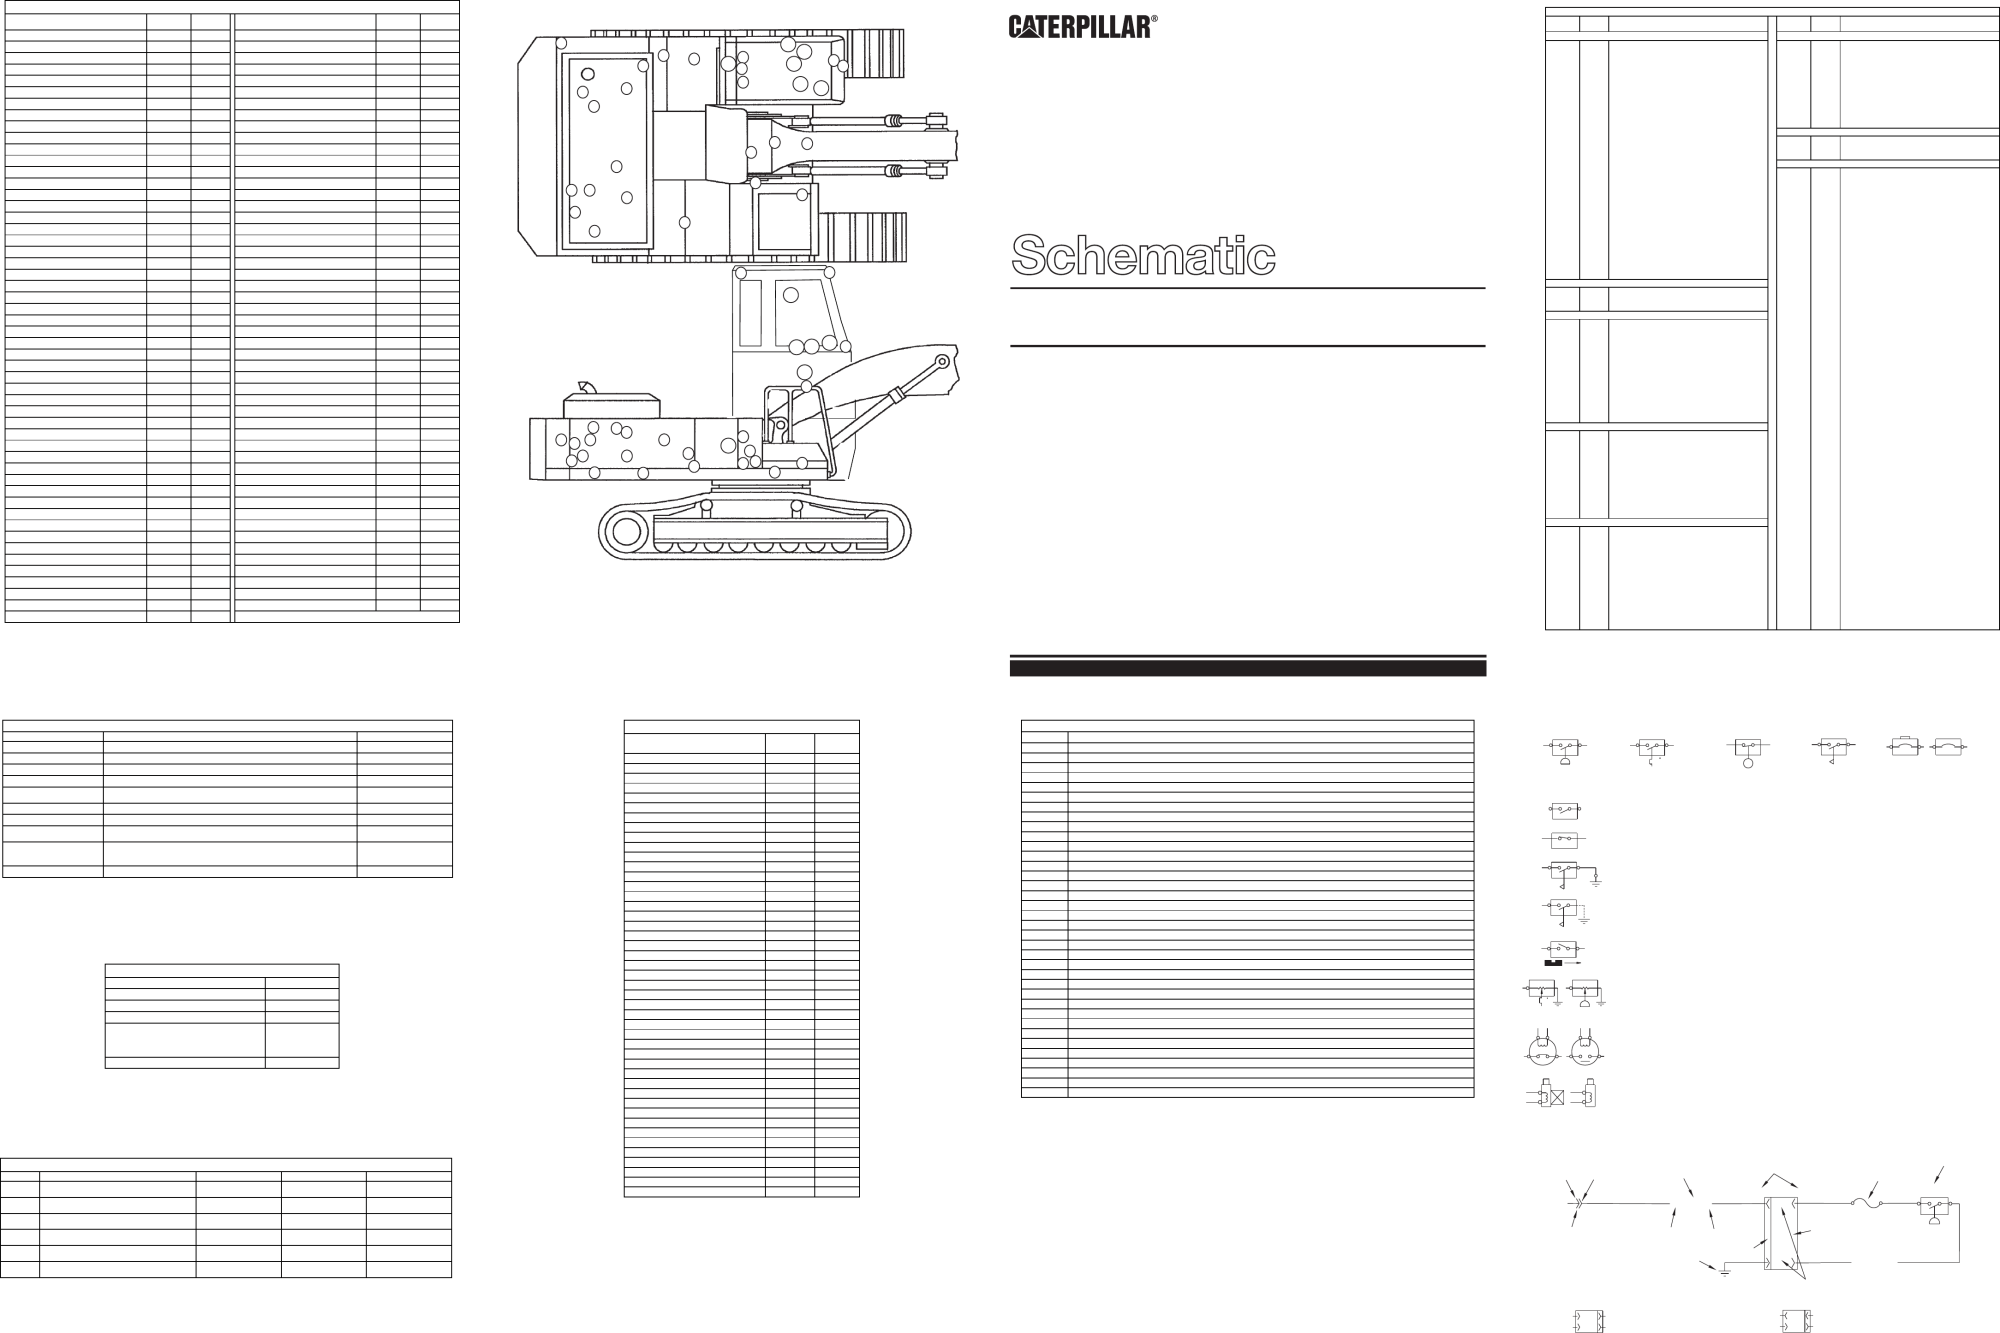 hight resolution of 325b material handler electrical schematic used in service manual cat 325b wiring diagram